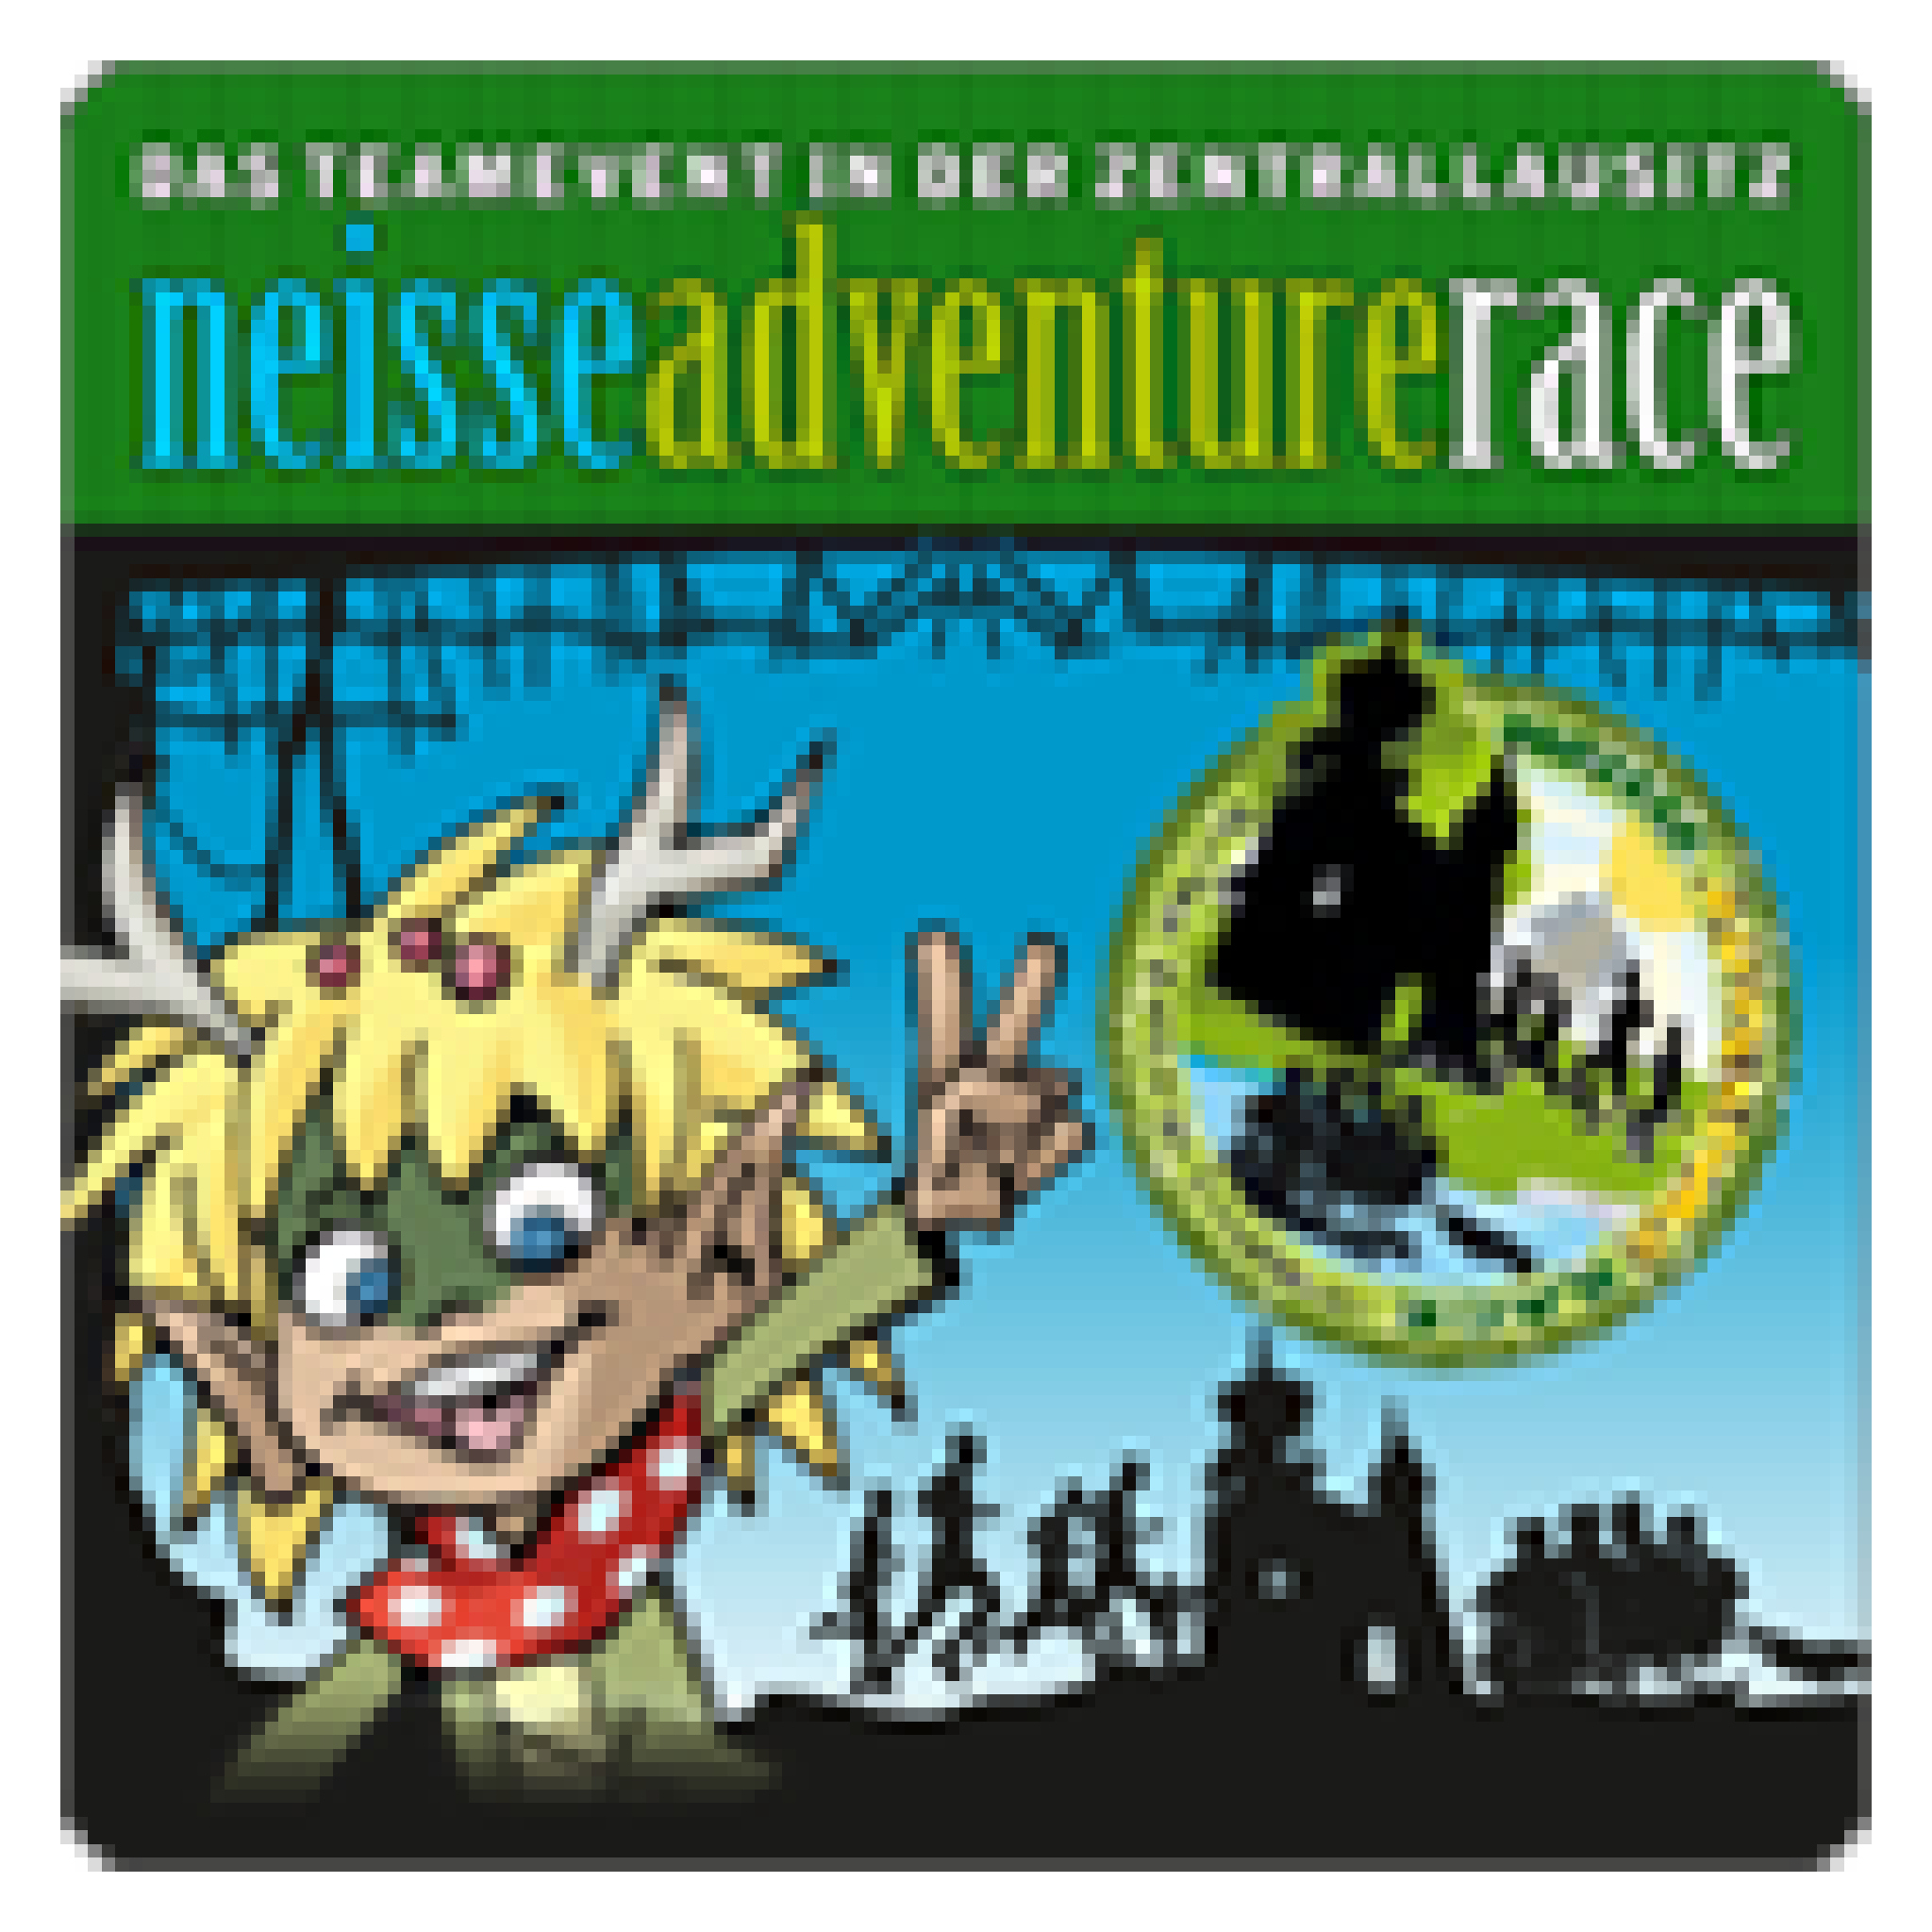 Neisse Adventure Race